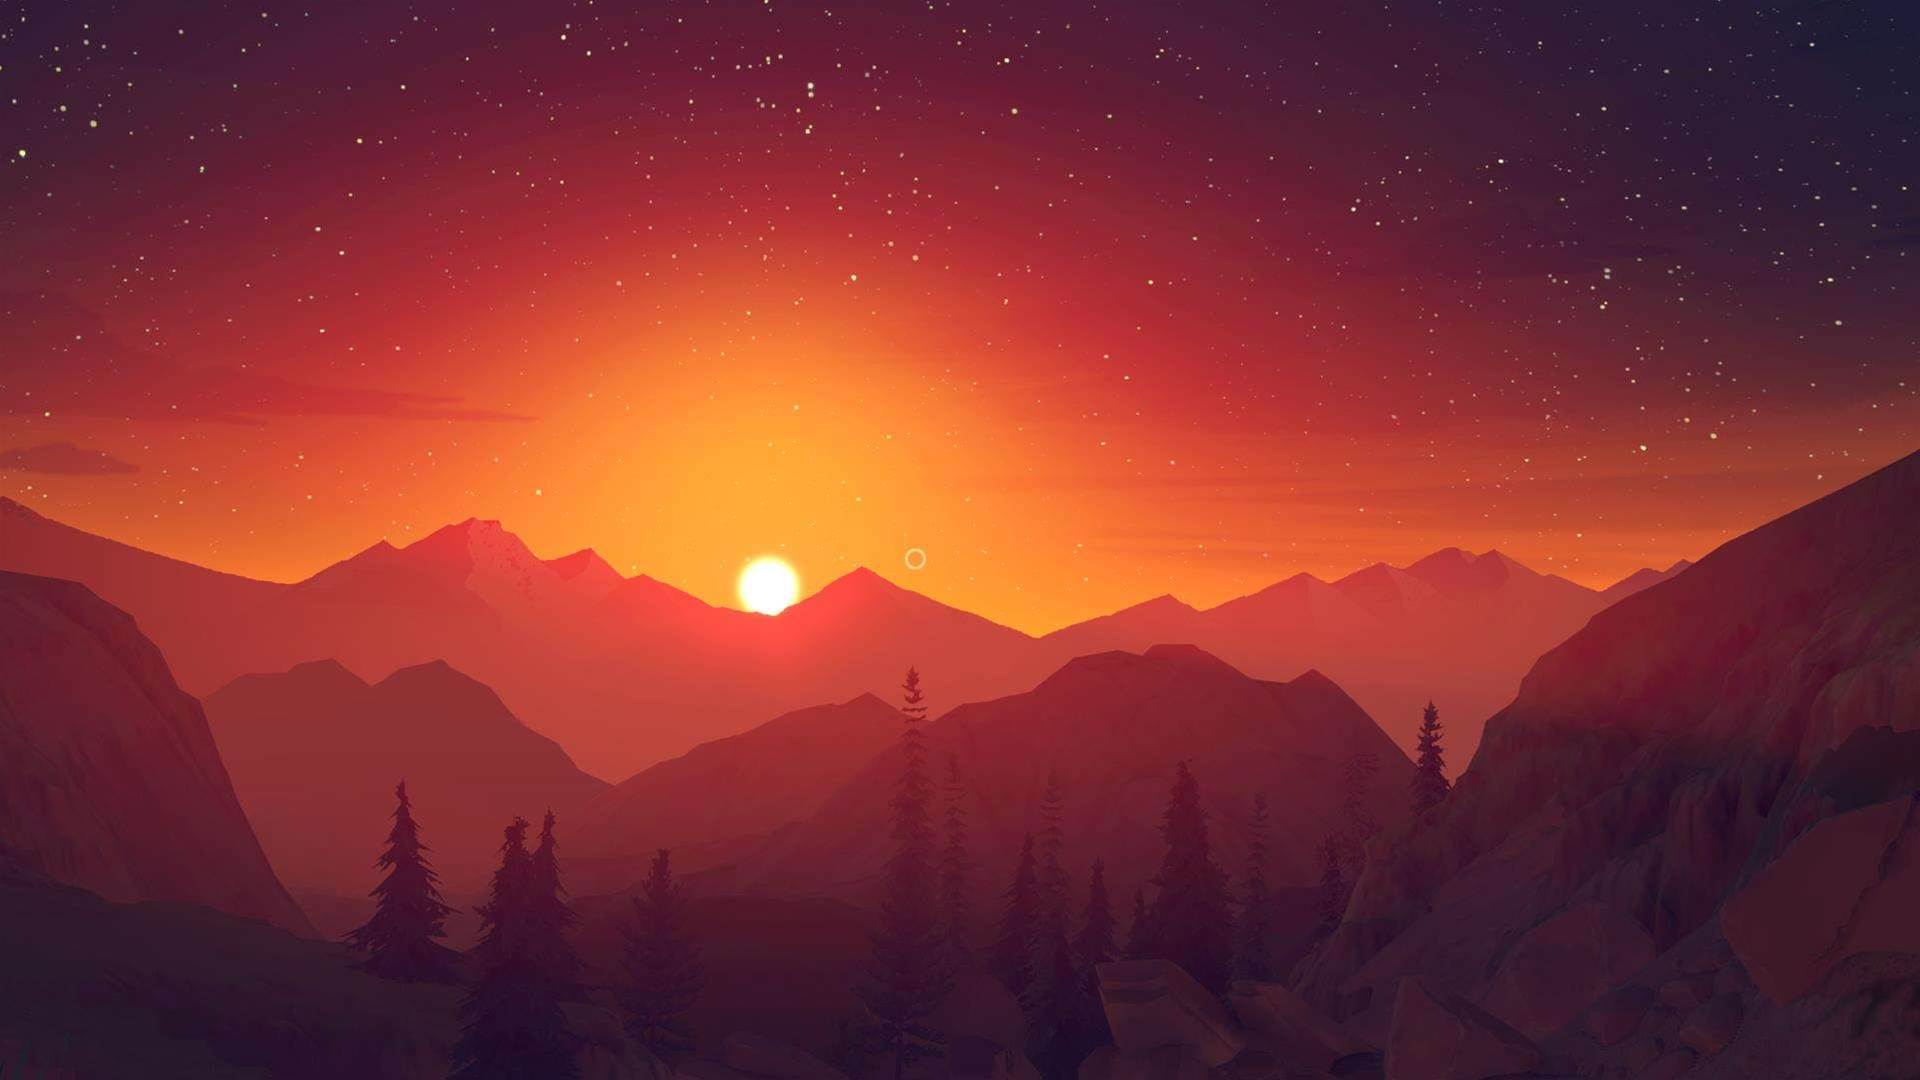 Firewatch screenshots